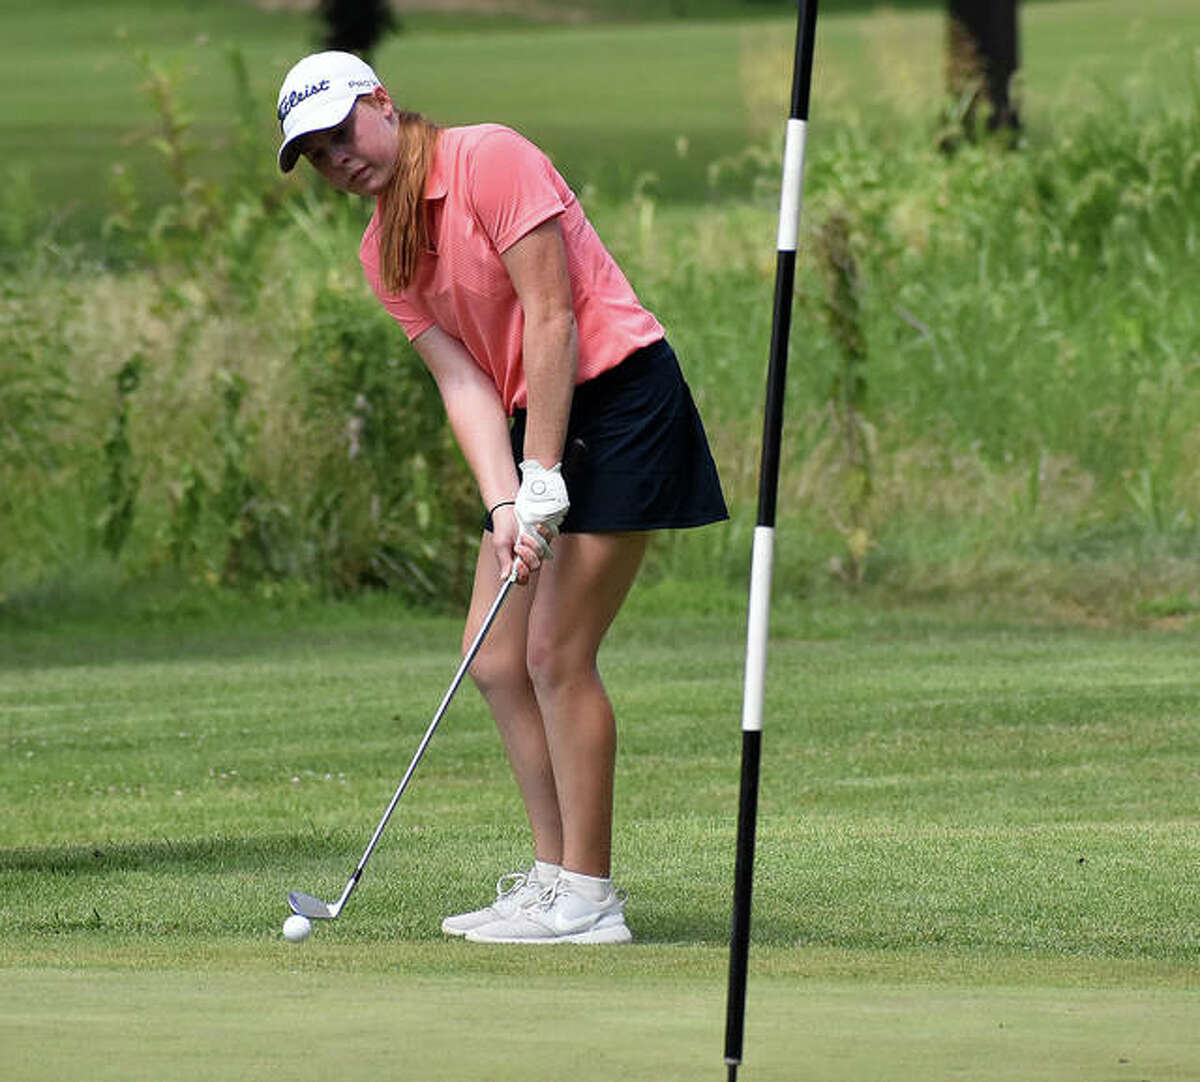 Riley Lewis hits a chip shot onto the green during an event at Spencer T. Olin Golf Course in 2020.